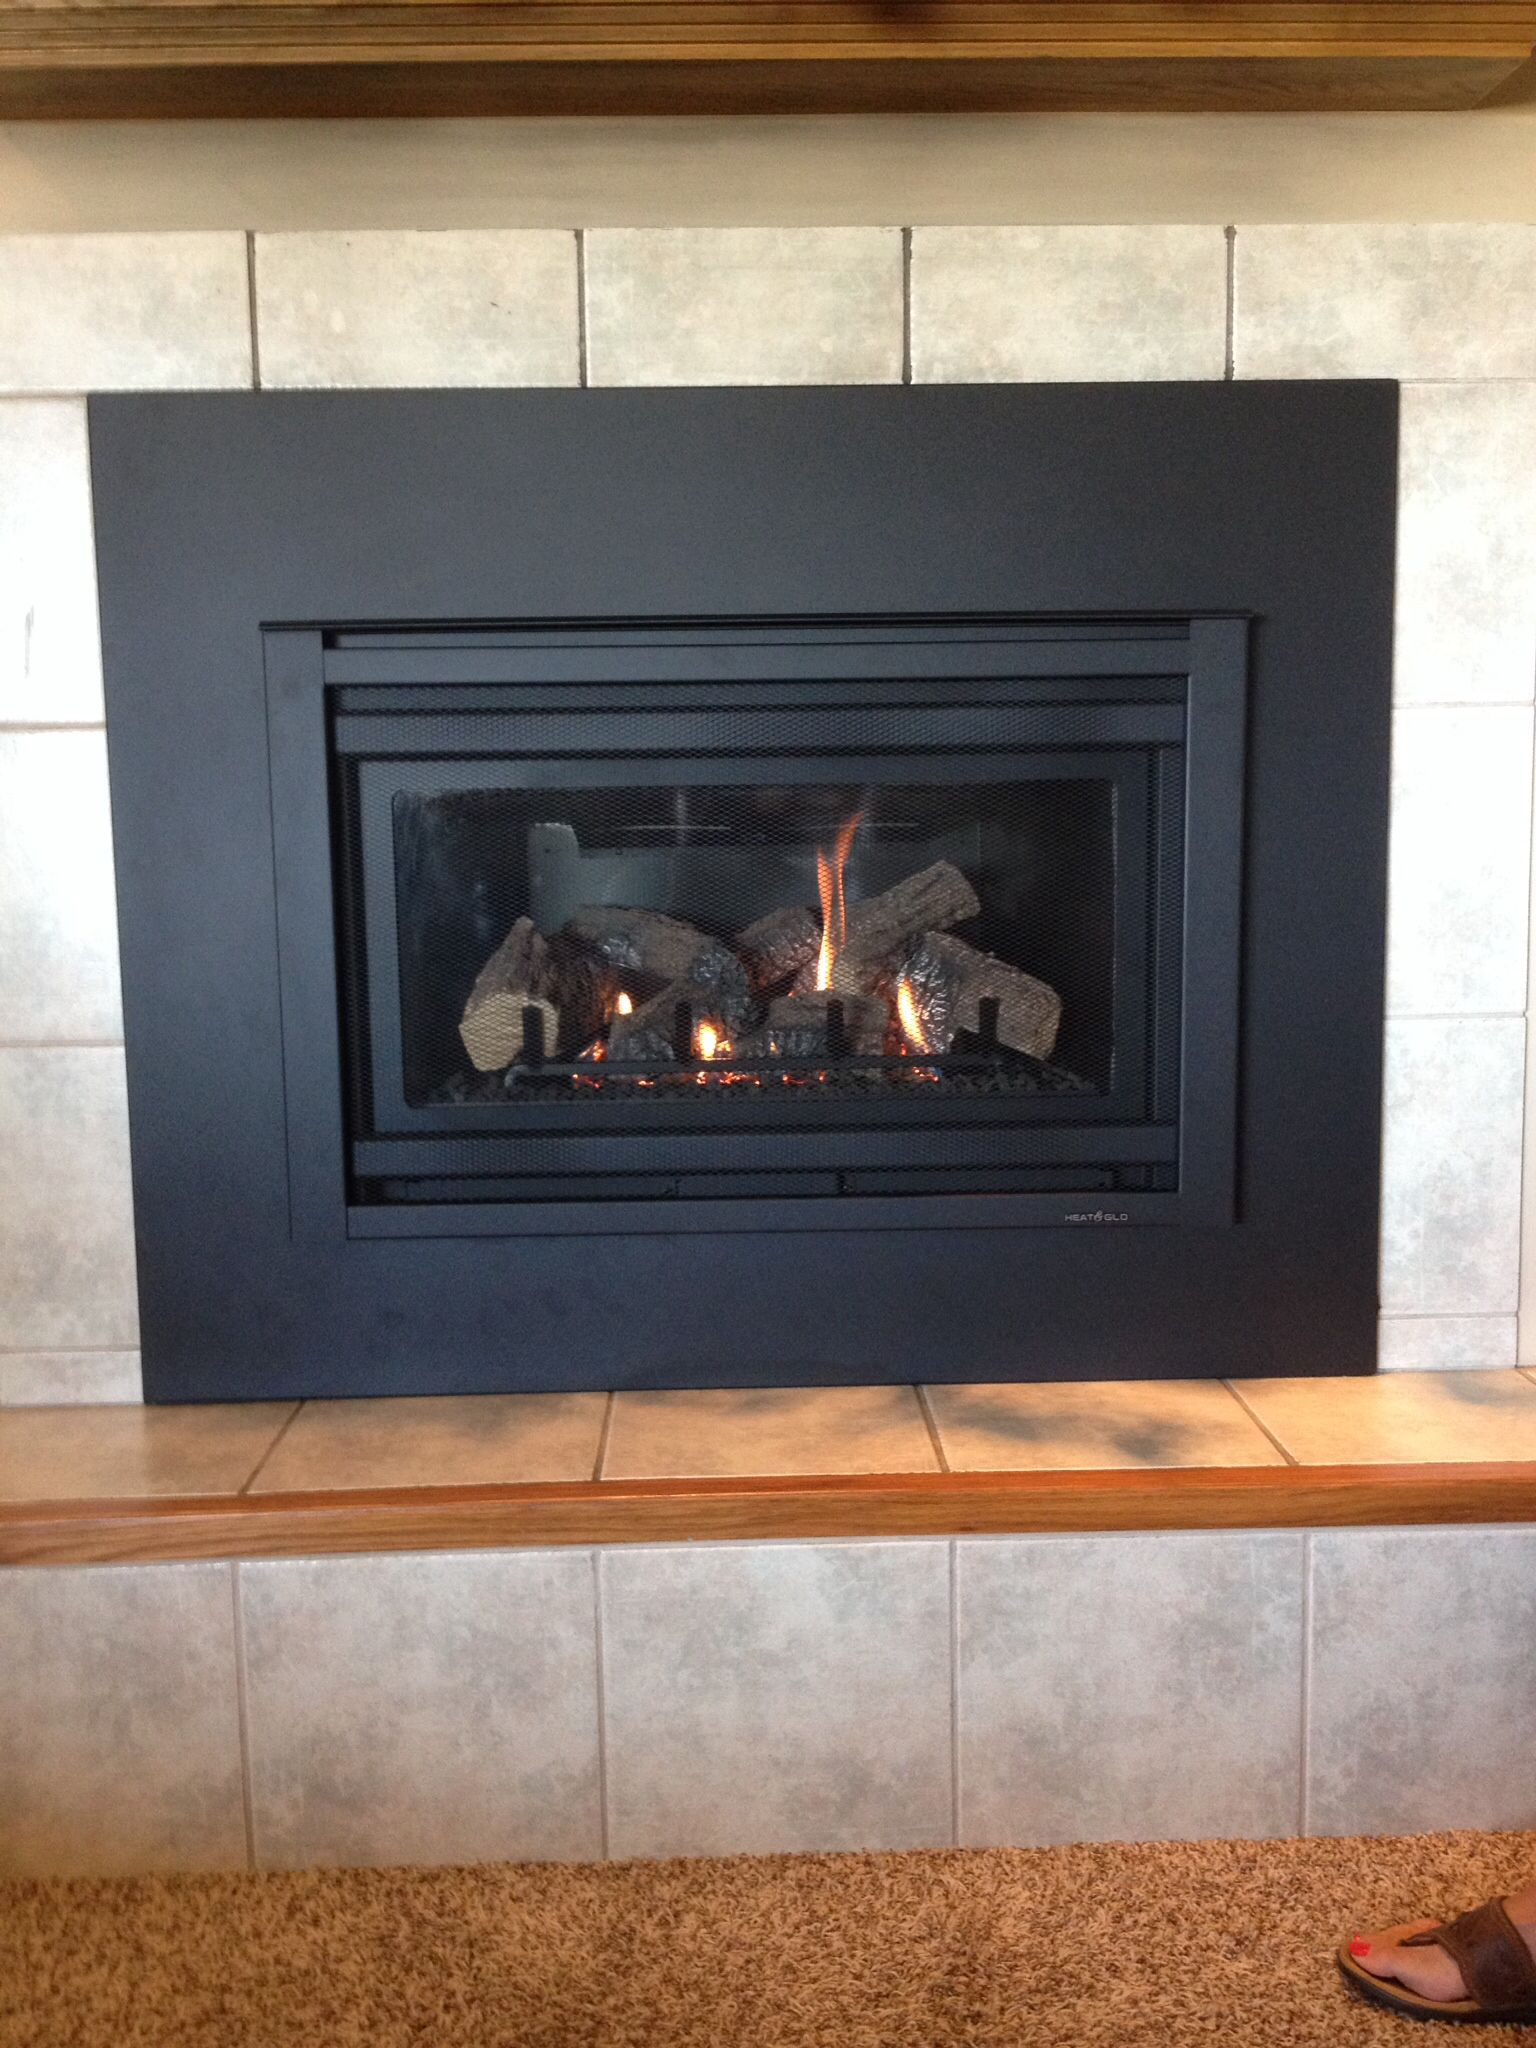 Heat N Glo Gas Fireplace Heat N Glo Supreme I 30 Gas Insert With Custom Surround Panel